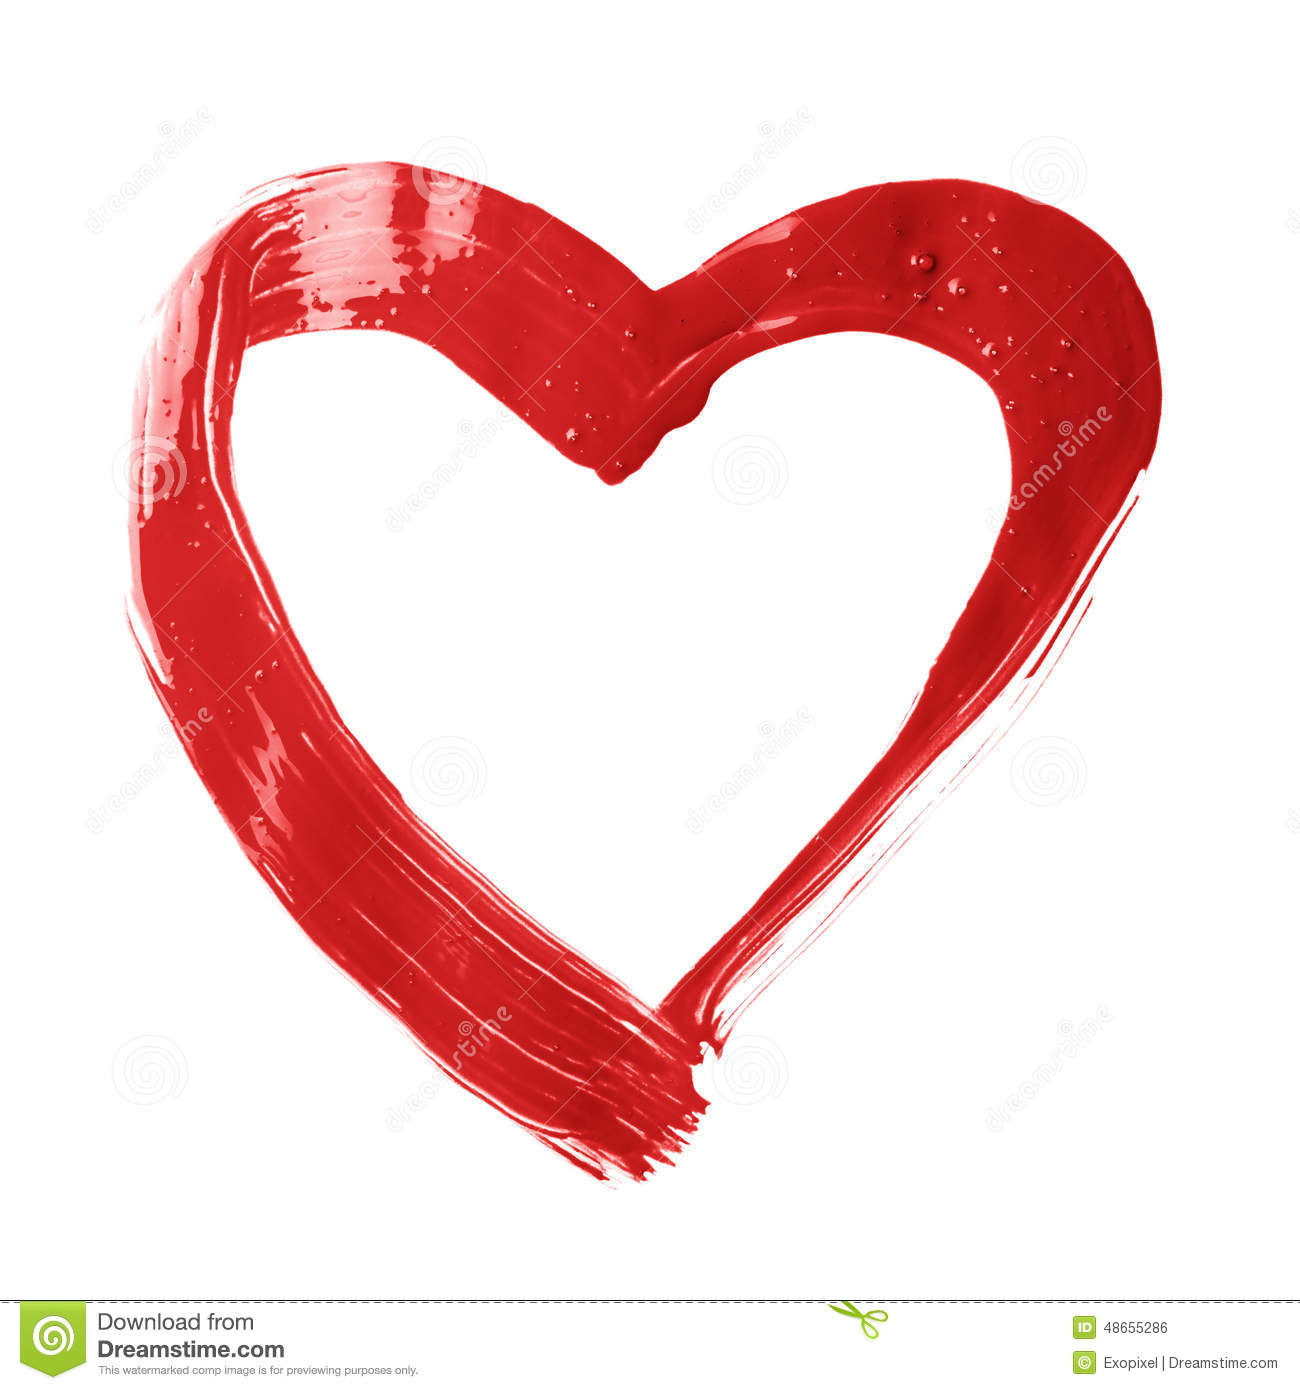 Christian dating for singles free with two hearts symbol